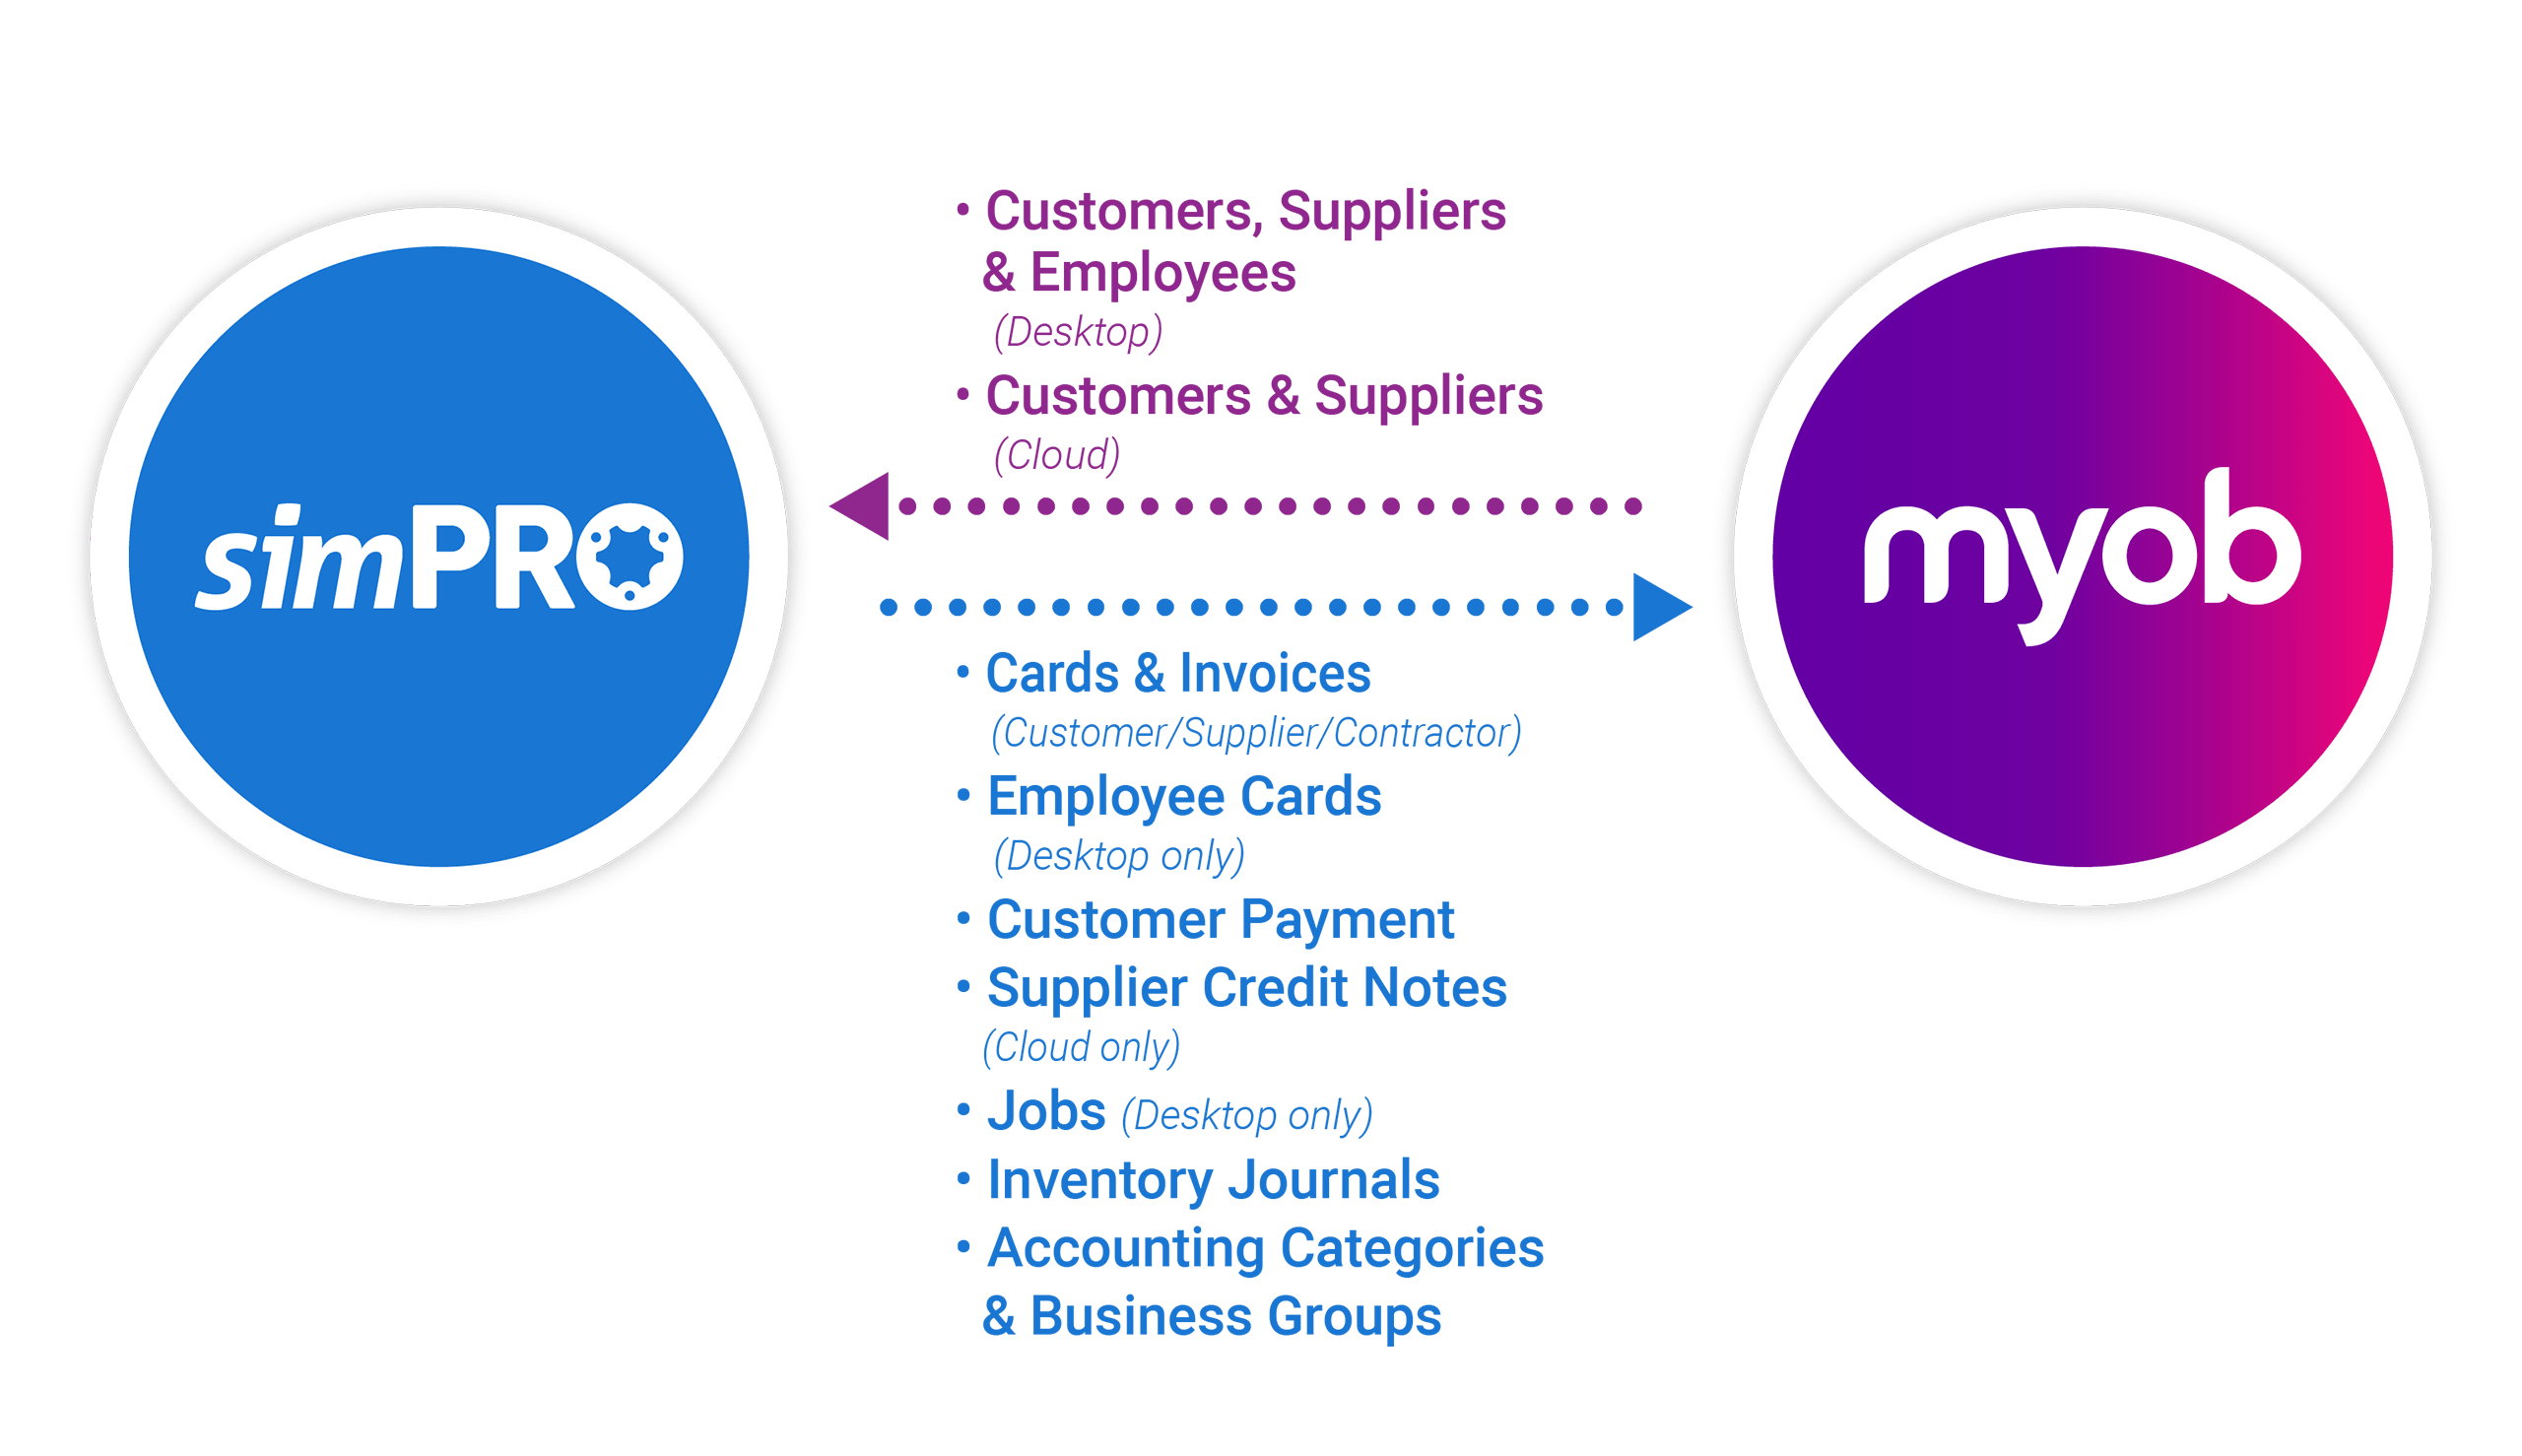 simPRO and MYOB functionality composition desktop